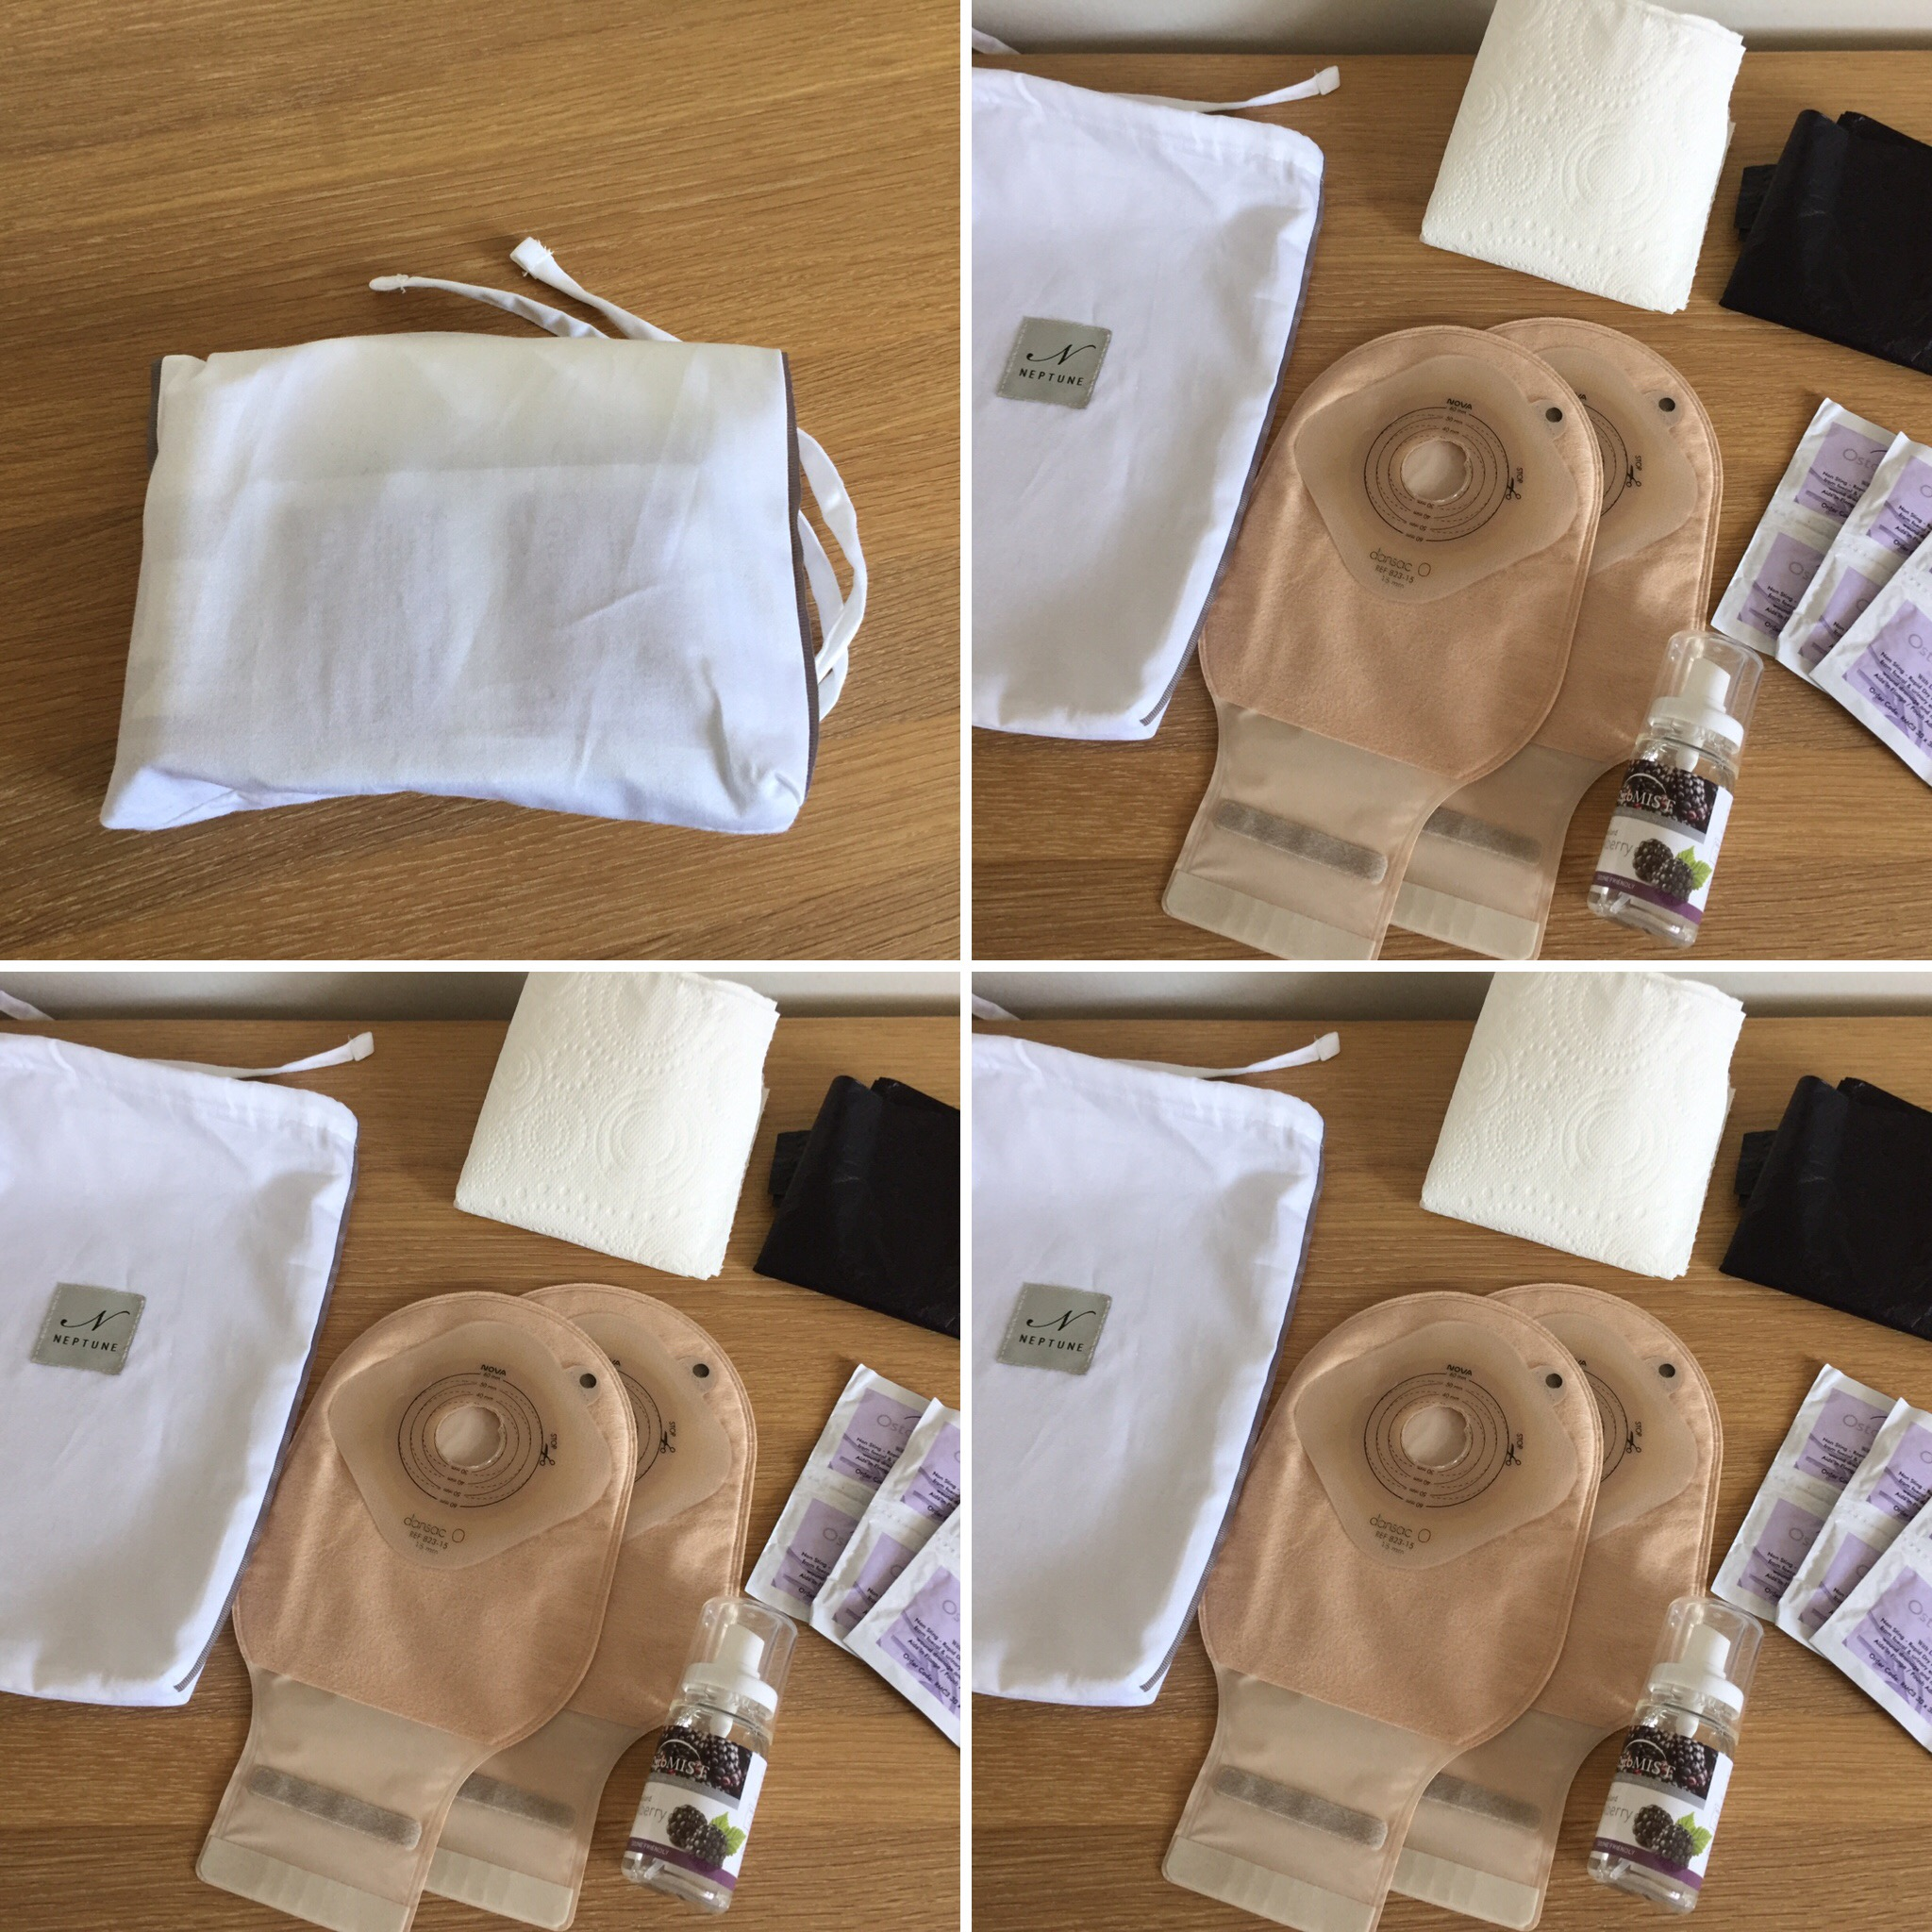 Knowing it would be a long day I packed two spare colostomy bags. To keep the weight I had to carry down to a minimum I pre cut my bags to save taking scissors, as they'd likely be taken off you at the gate anyway. I took Ostoguard wipes for removing the bag instead of spray, and I took a small bottle of room spray, although I wouldn't have needed it, you wouldn't have notice any smell I produced over the smell of the loos anyway. :0  All neatly stowed in a little pouch that I put in my little rucksack.  And to finish off the weekend nicely we met up with Kim and the twins for a lovely Sunday roast. To which I wore my normal (boring?) clothes and no tail...